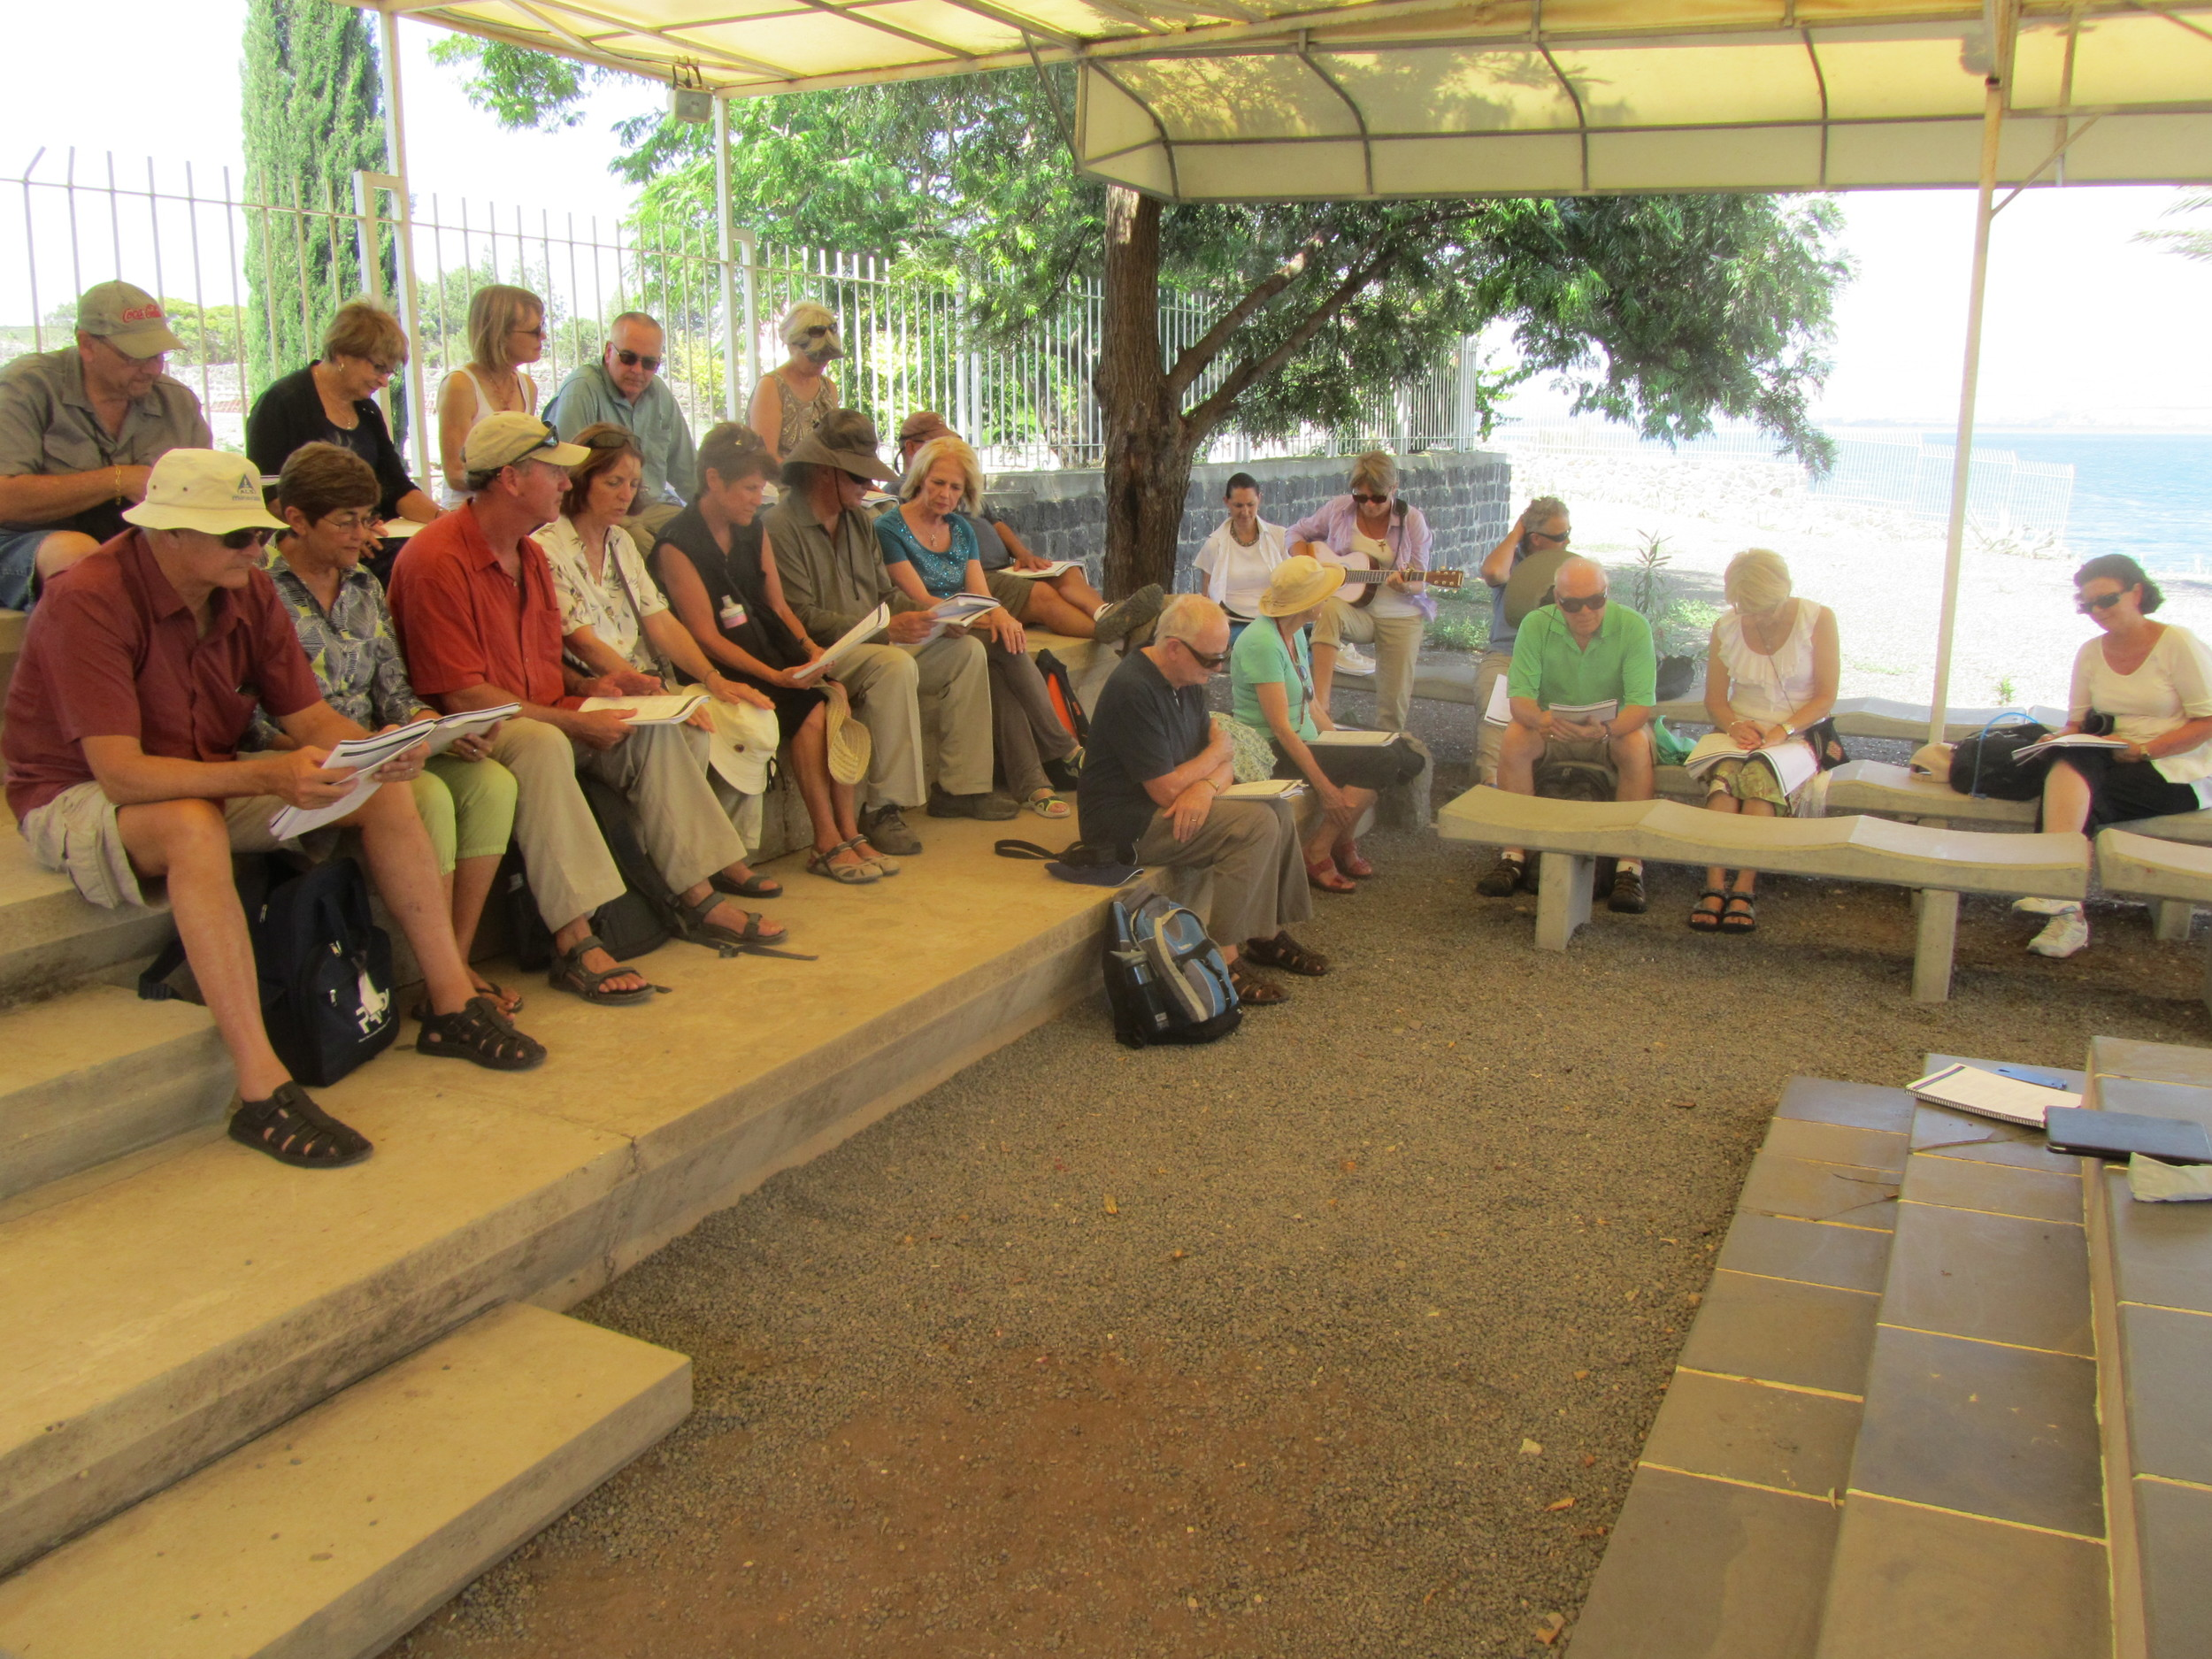 Enjoying a Time of Worship on the Beach at Capernaum